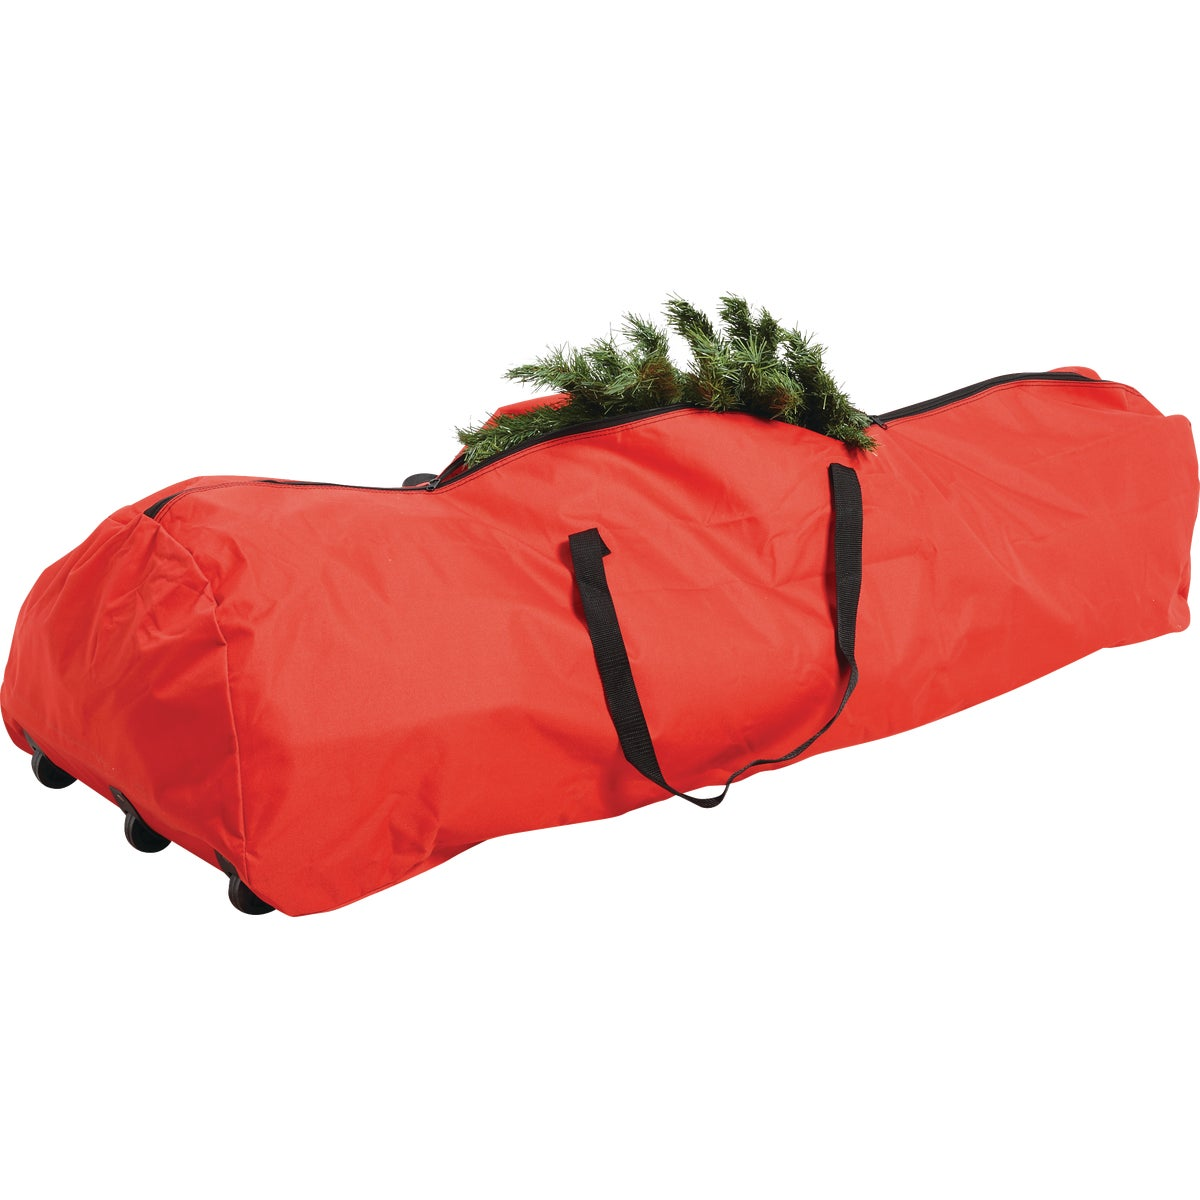 9FT ROLLING TREE BAG